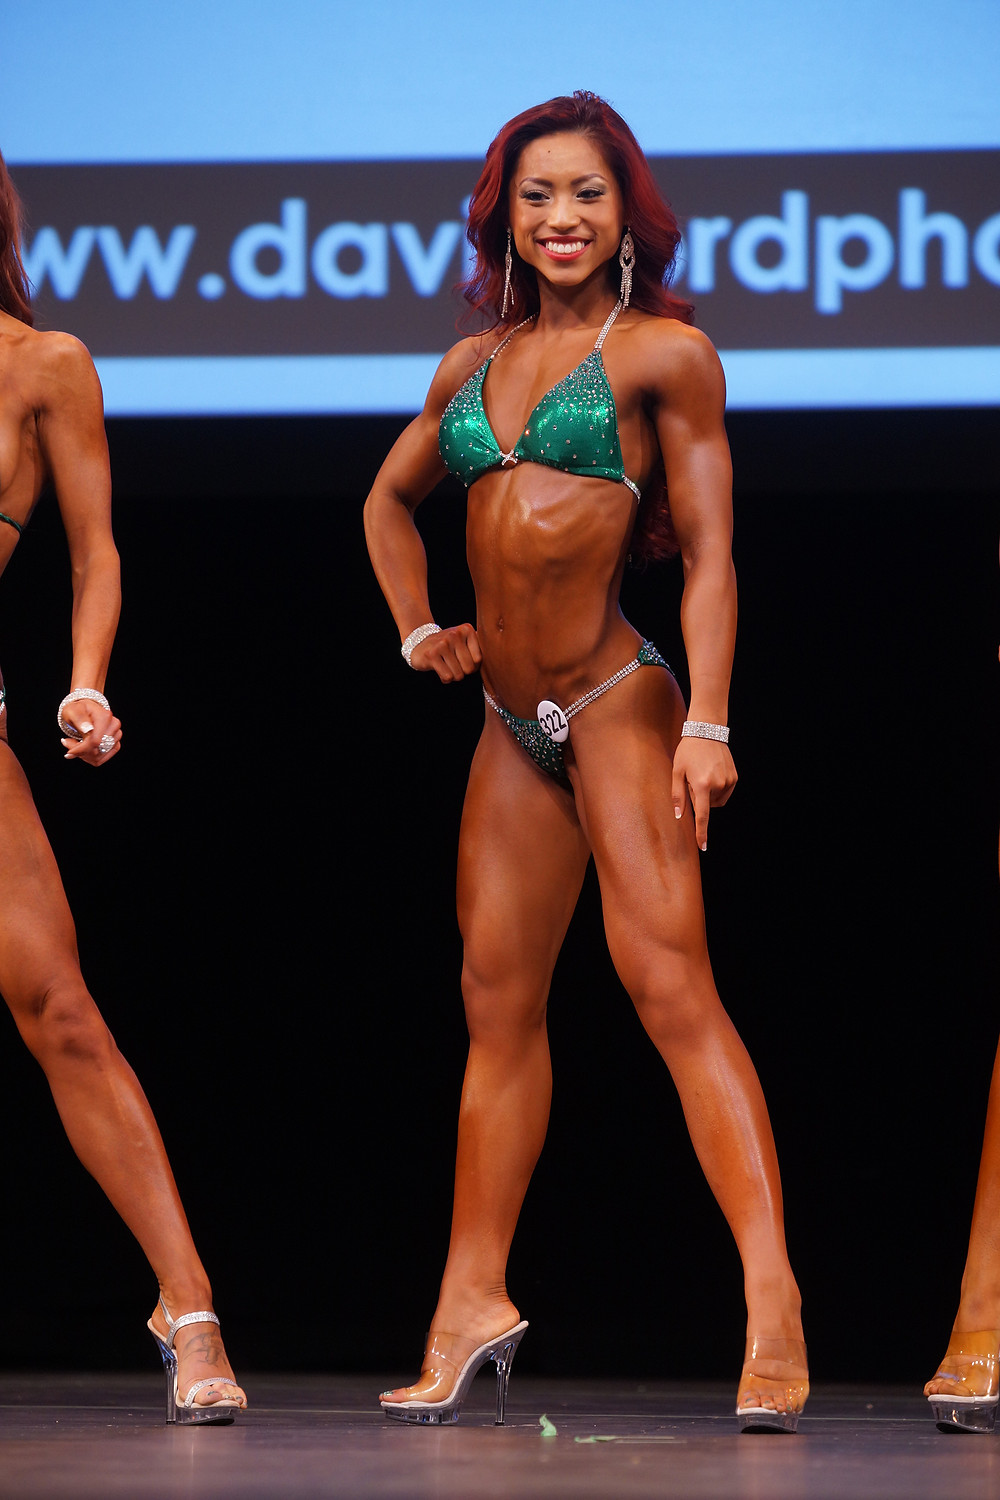 Competeing in the BC Provincial Championships in the Bikini B category